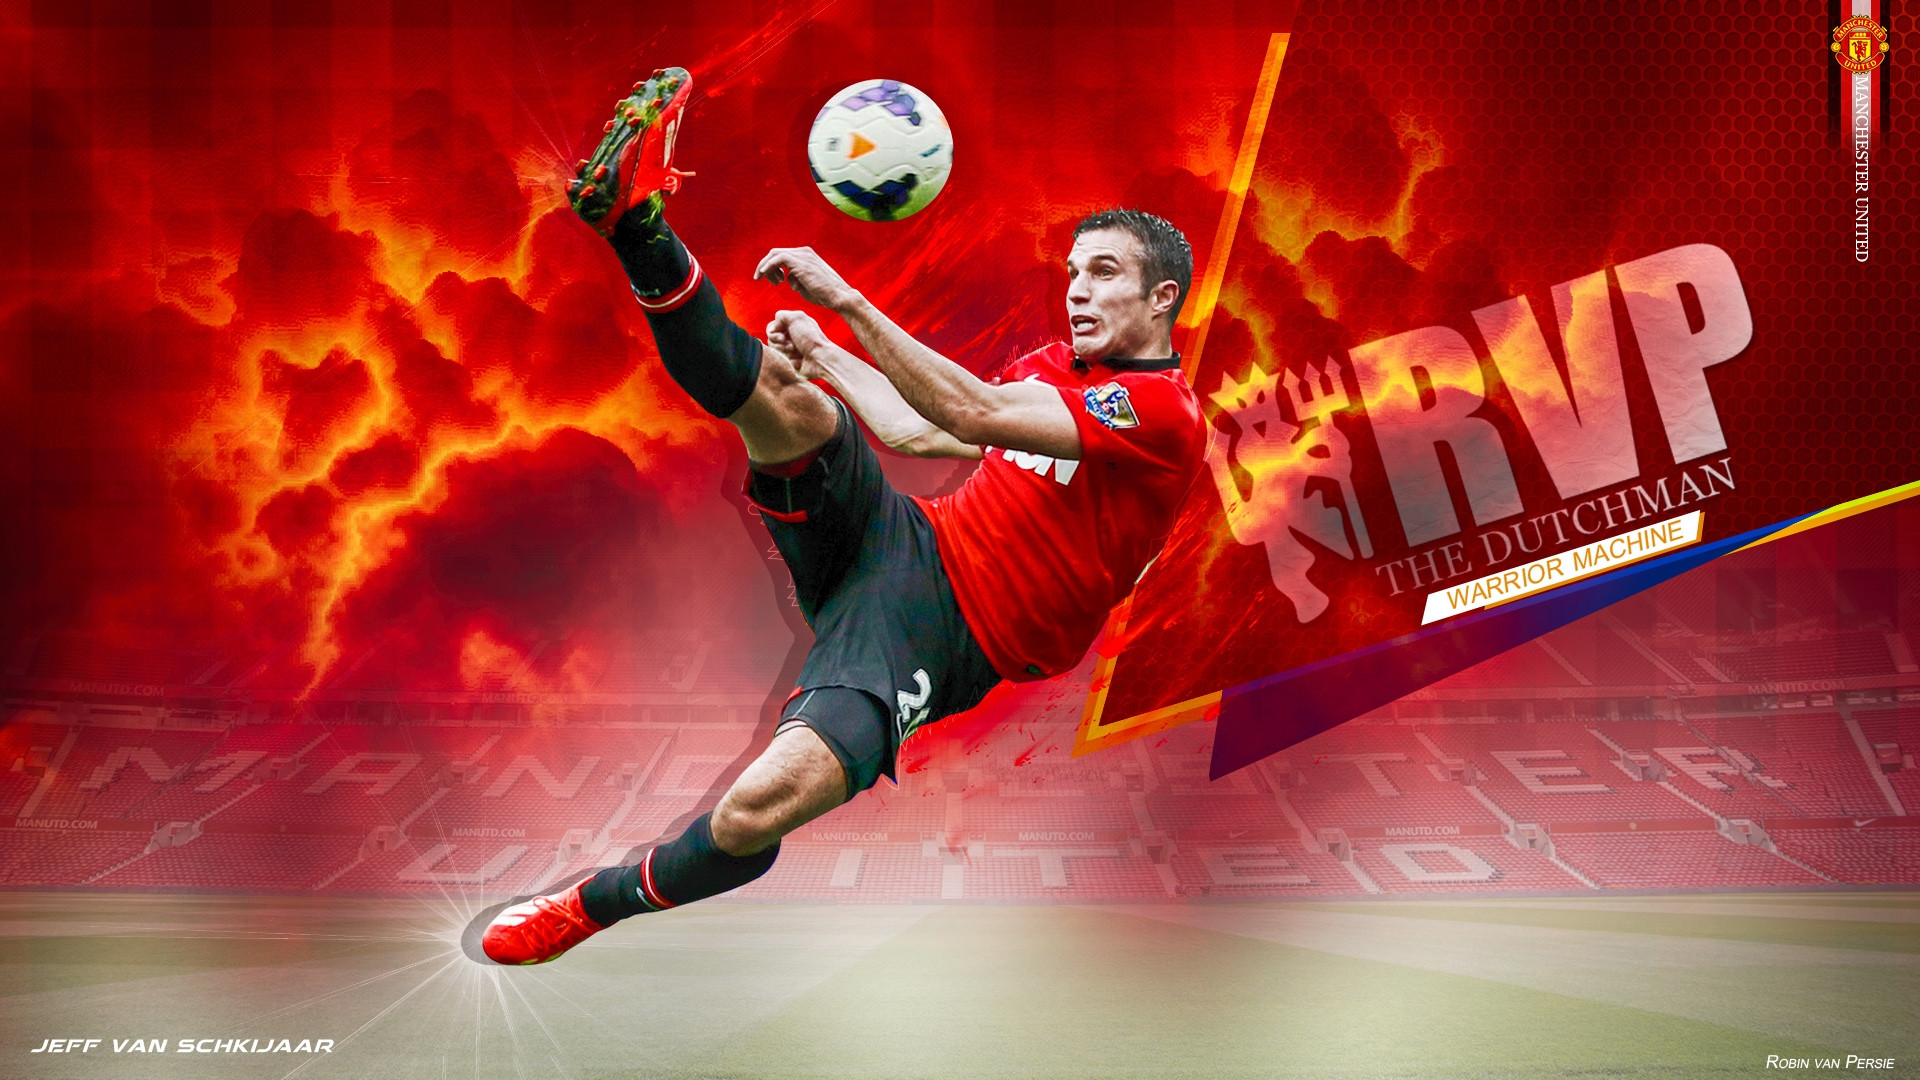 Manchester United Logo Wallpapers HD 2015 1920x1080